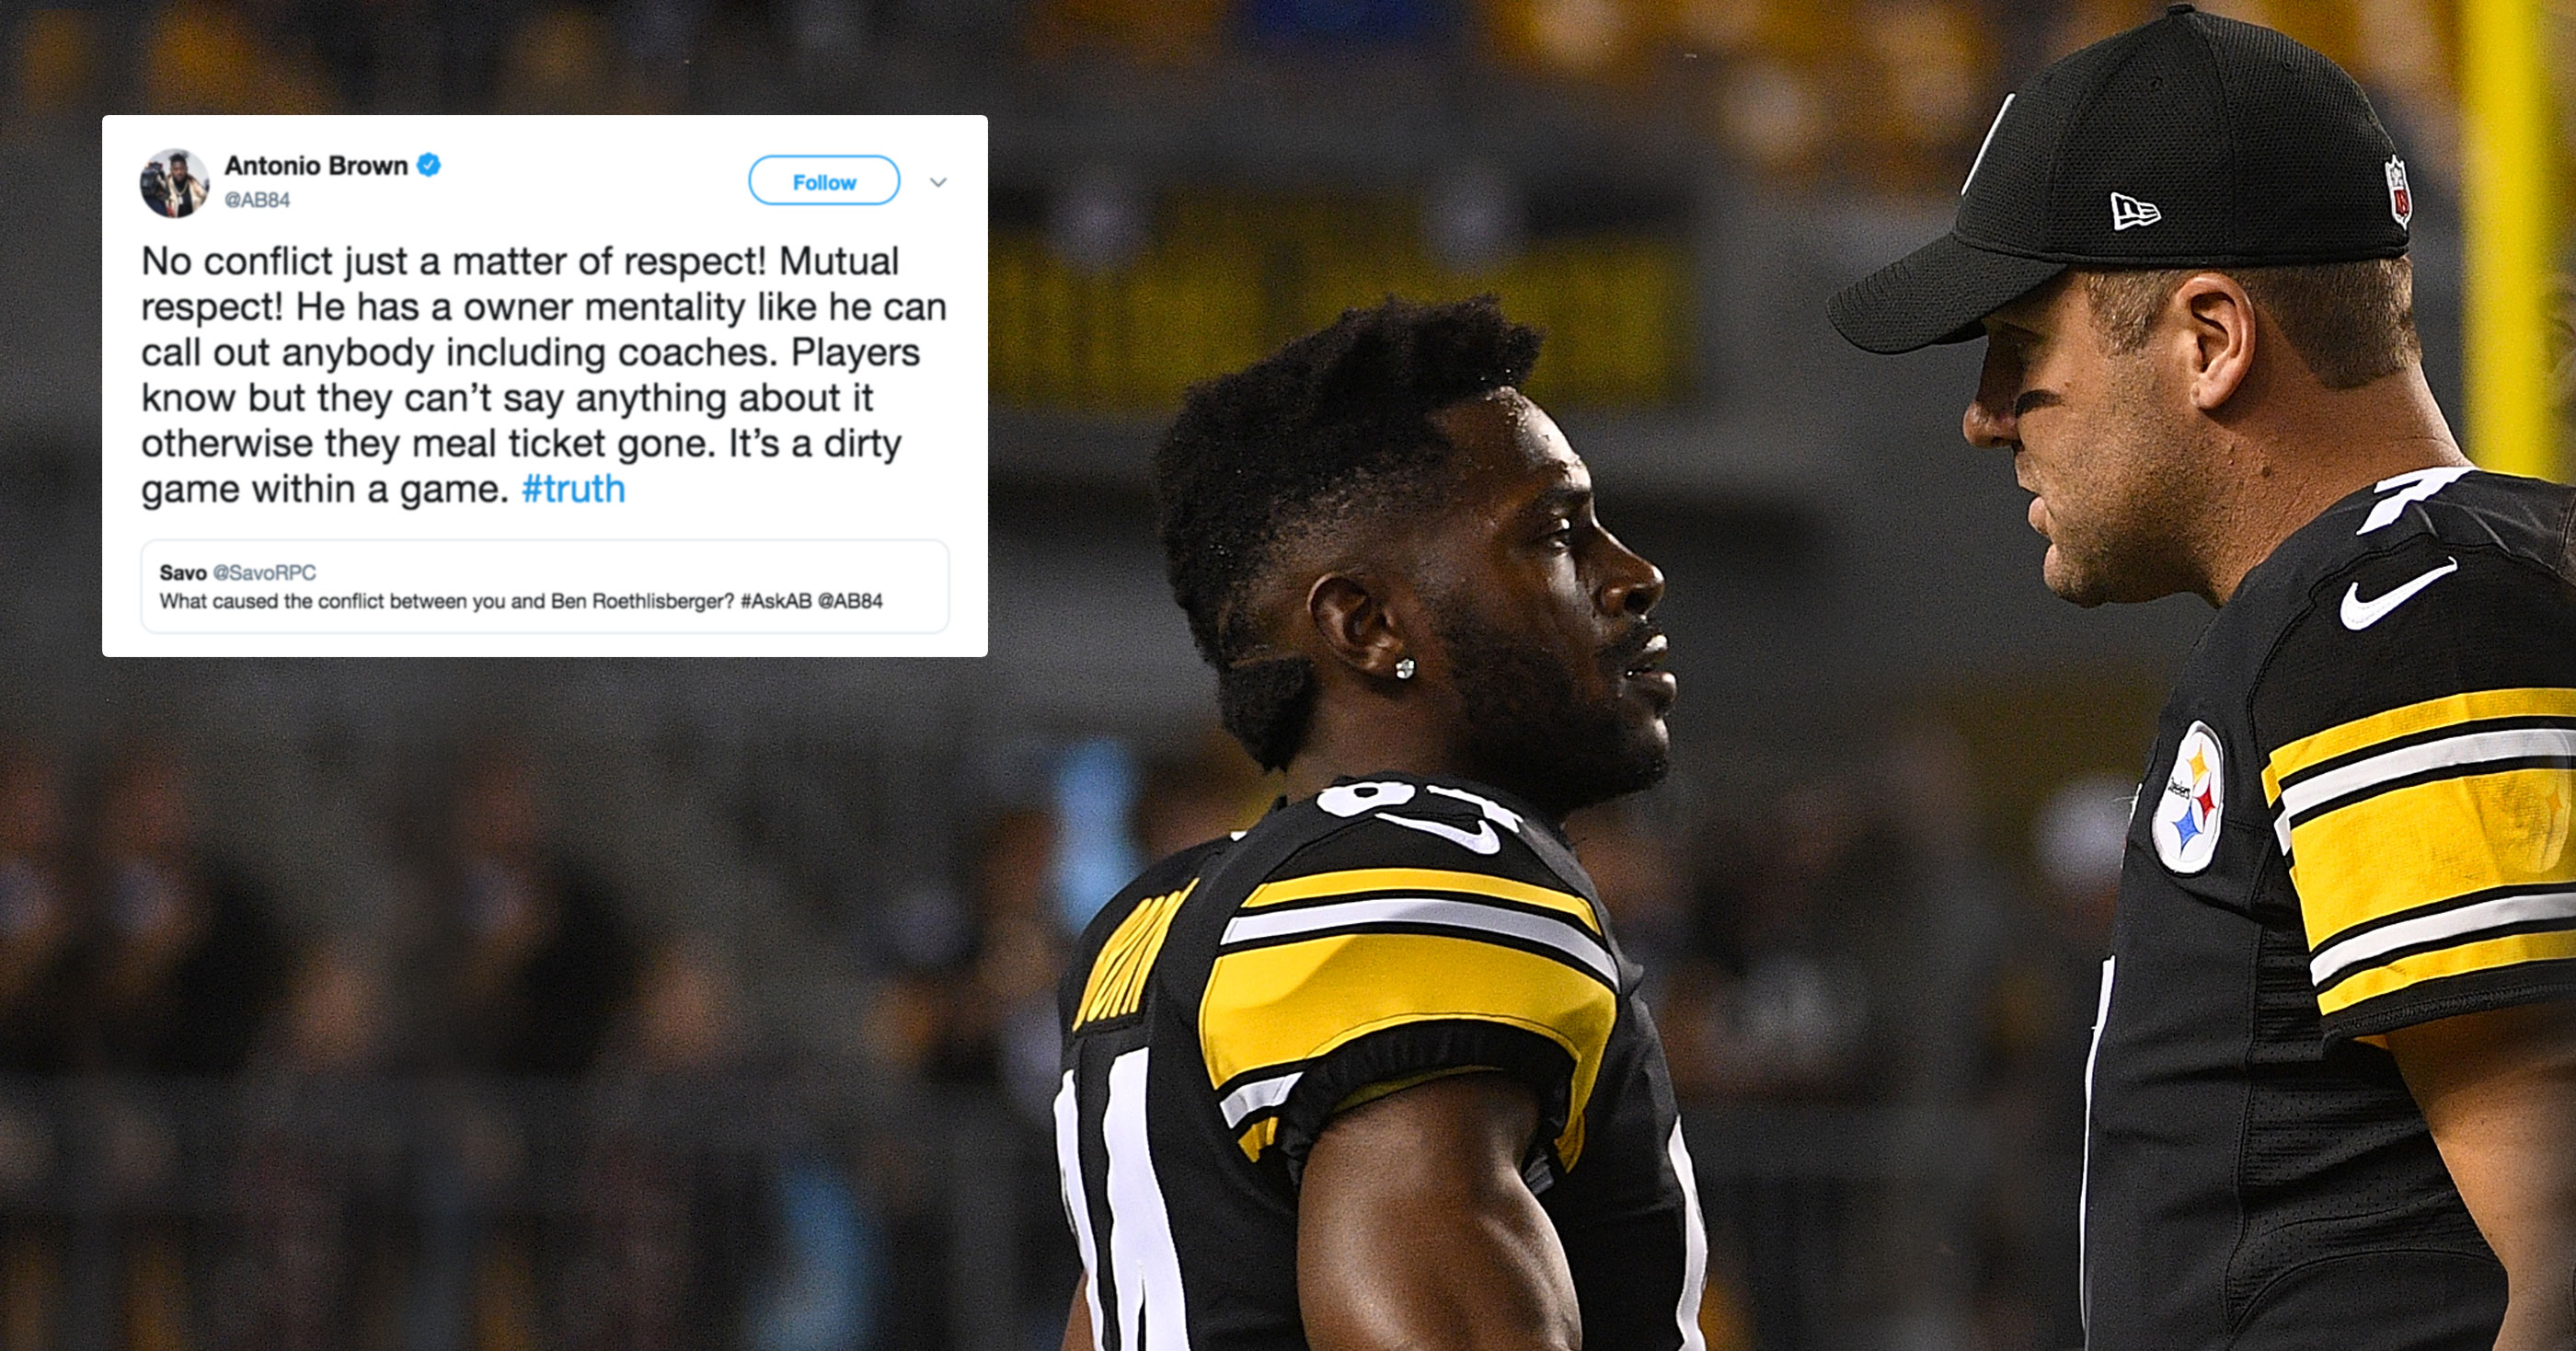 97daa1040 Antonio Brown Rips Ben Roethlisberger On Twitter During Q A Session With  Fans